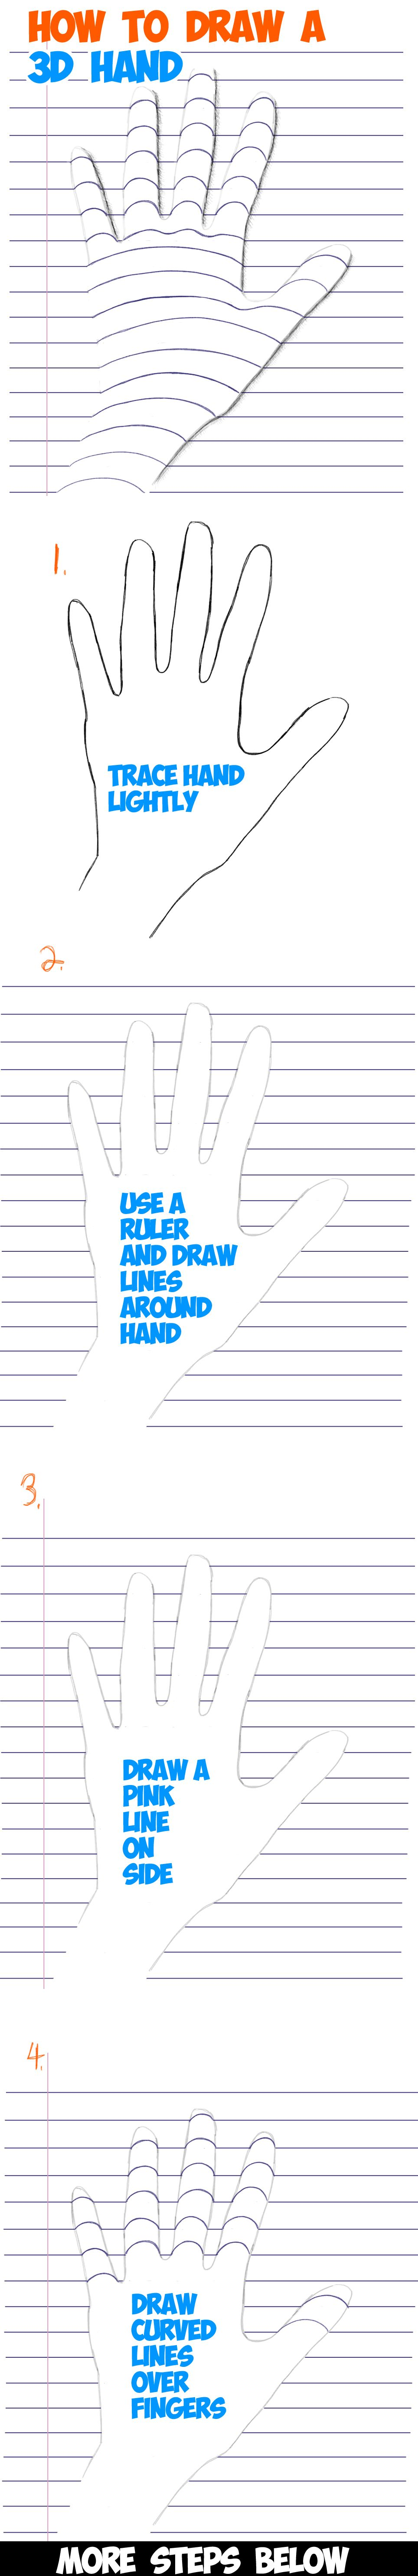 How To Draw A D Hand On Notebook Paper  Drawing Trick For Kids